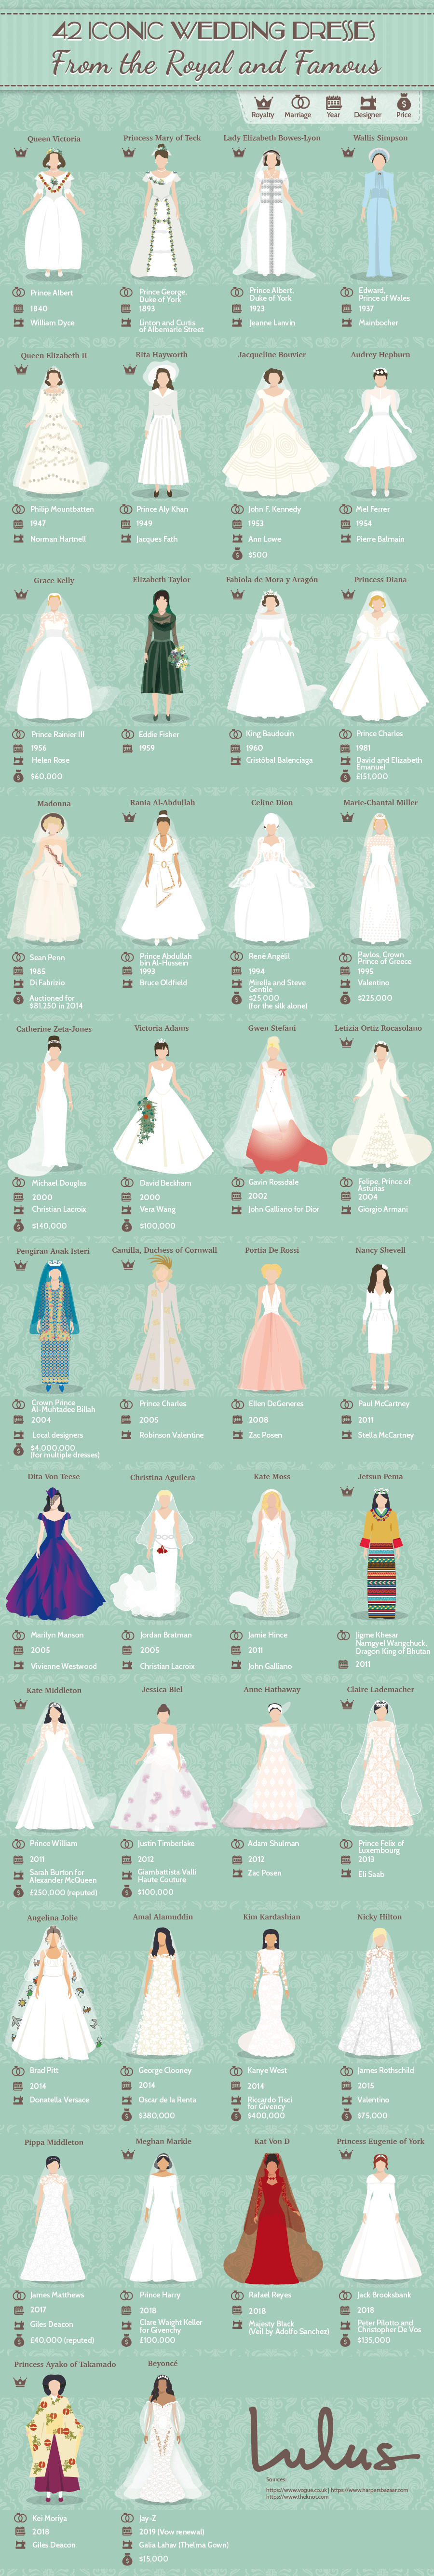 An overall look at iconic wedding dresses